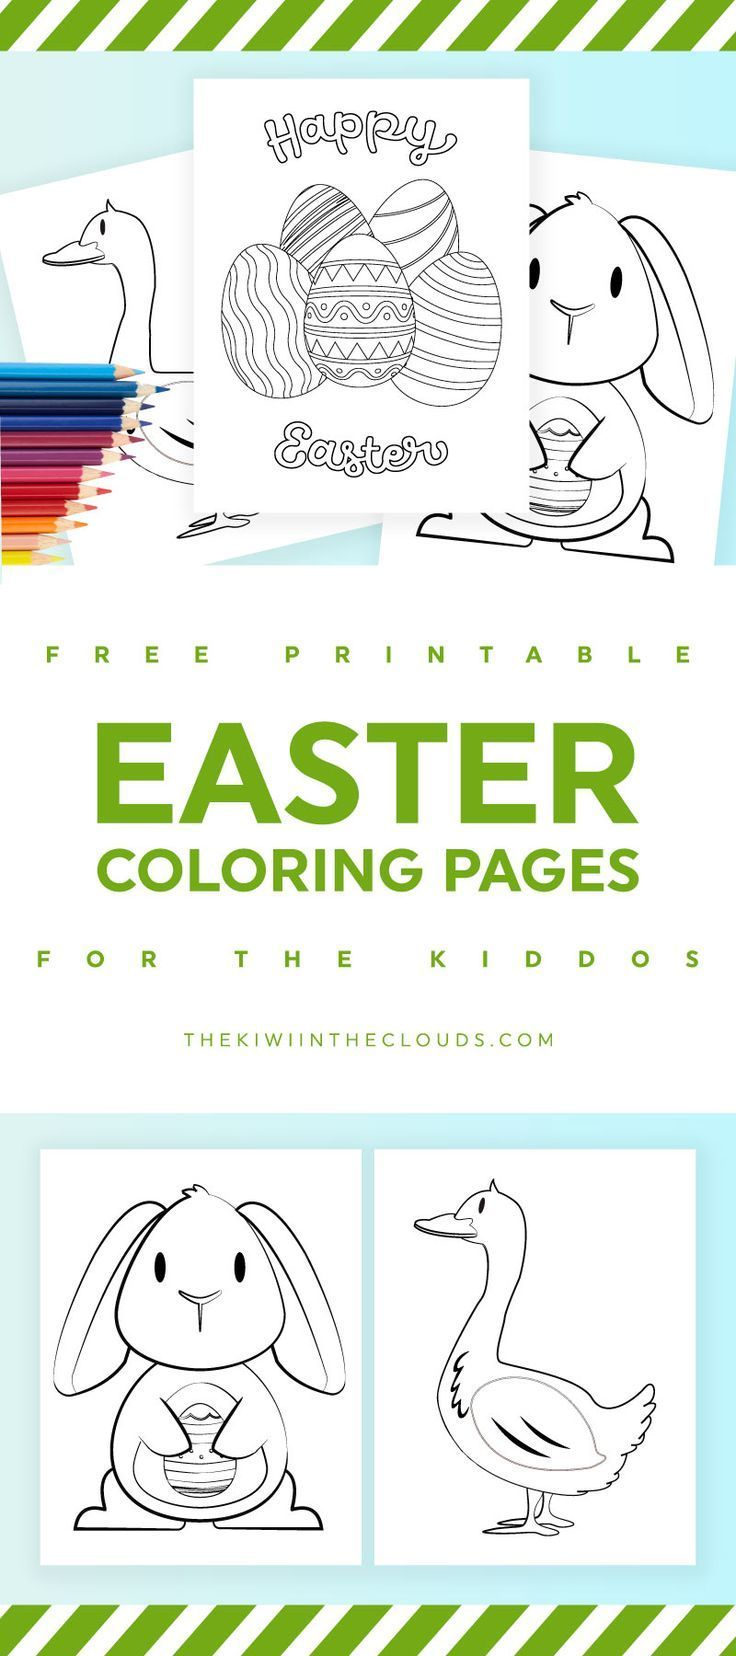 Ba ba back to school coloring sheets printable - Free Easter Printable Coloring Pages You Need To Entertain The Kids